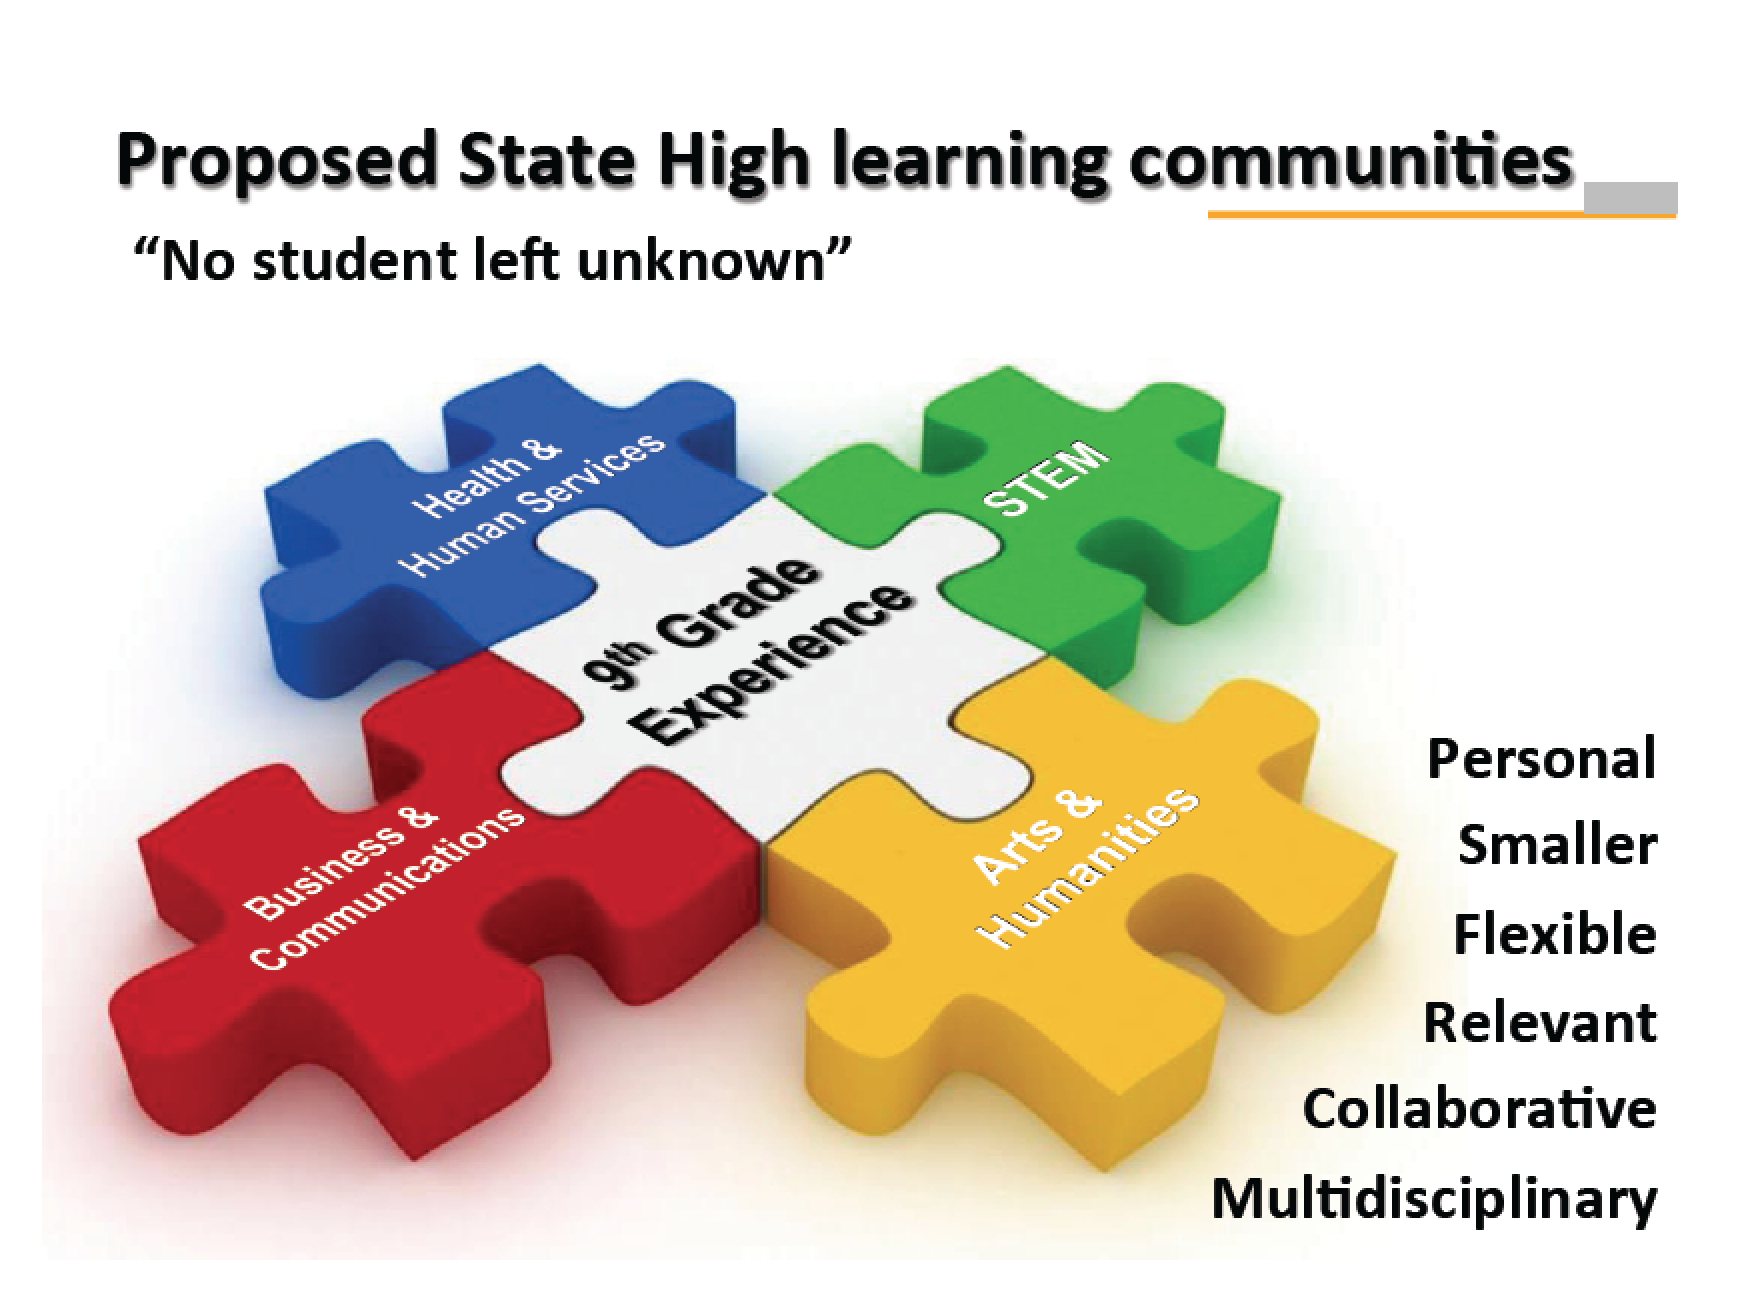 Proposed State High Learning Communities